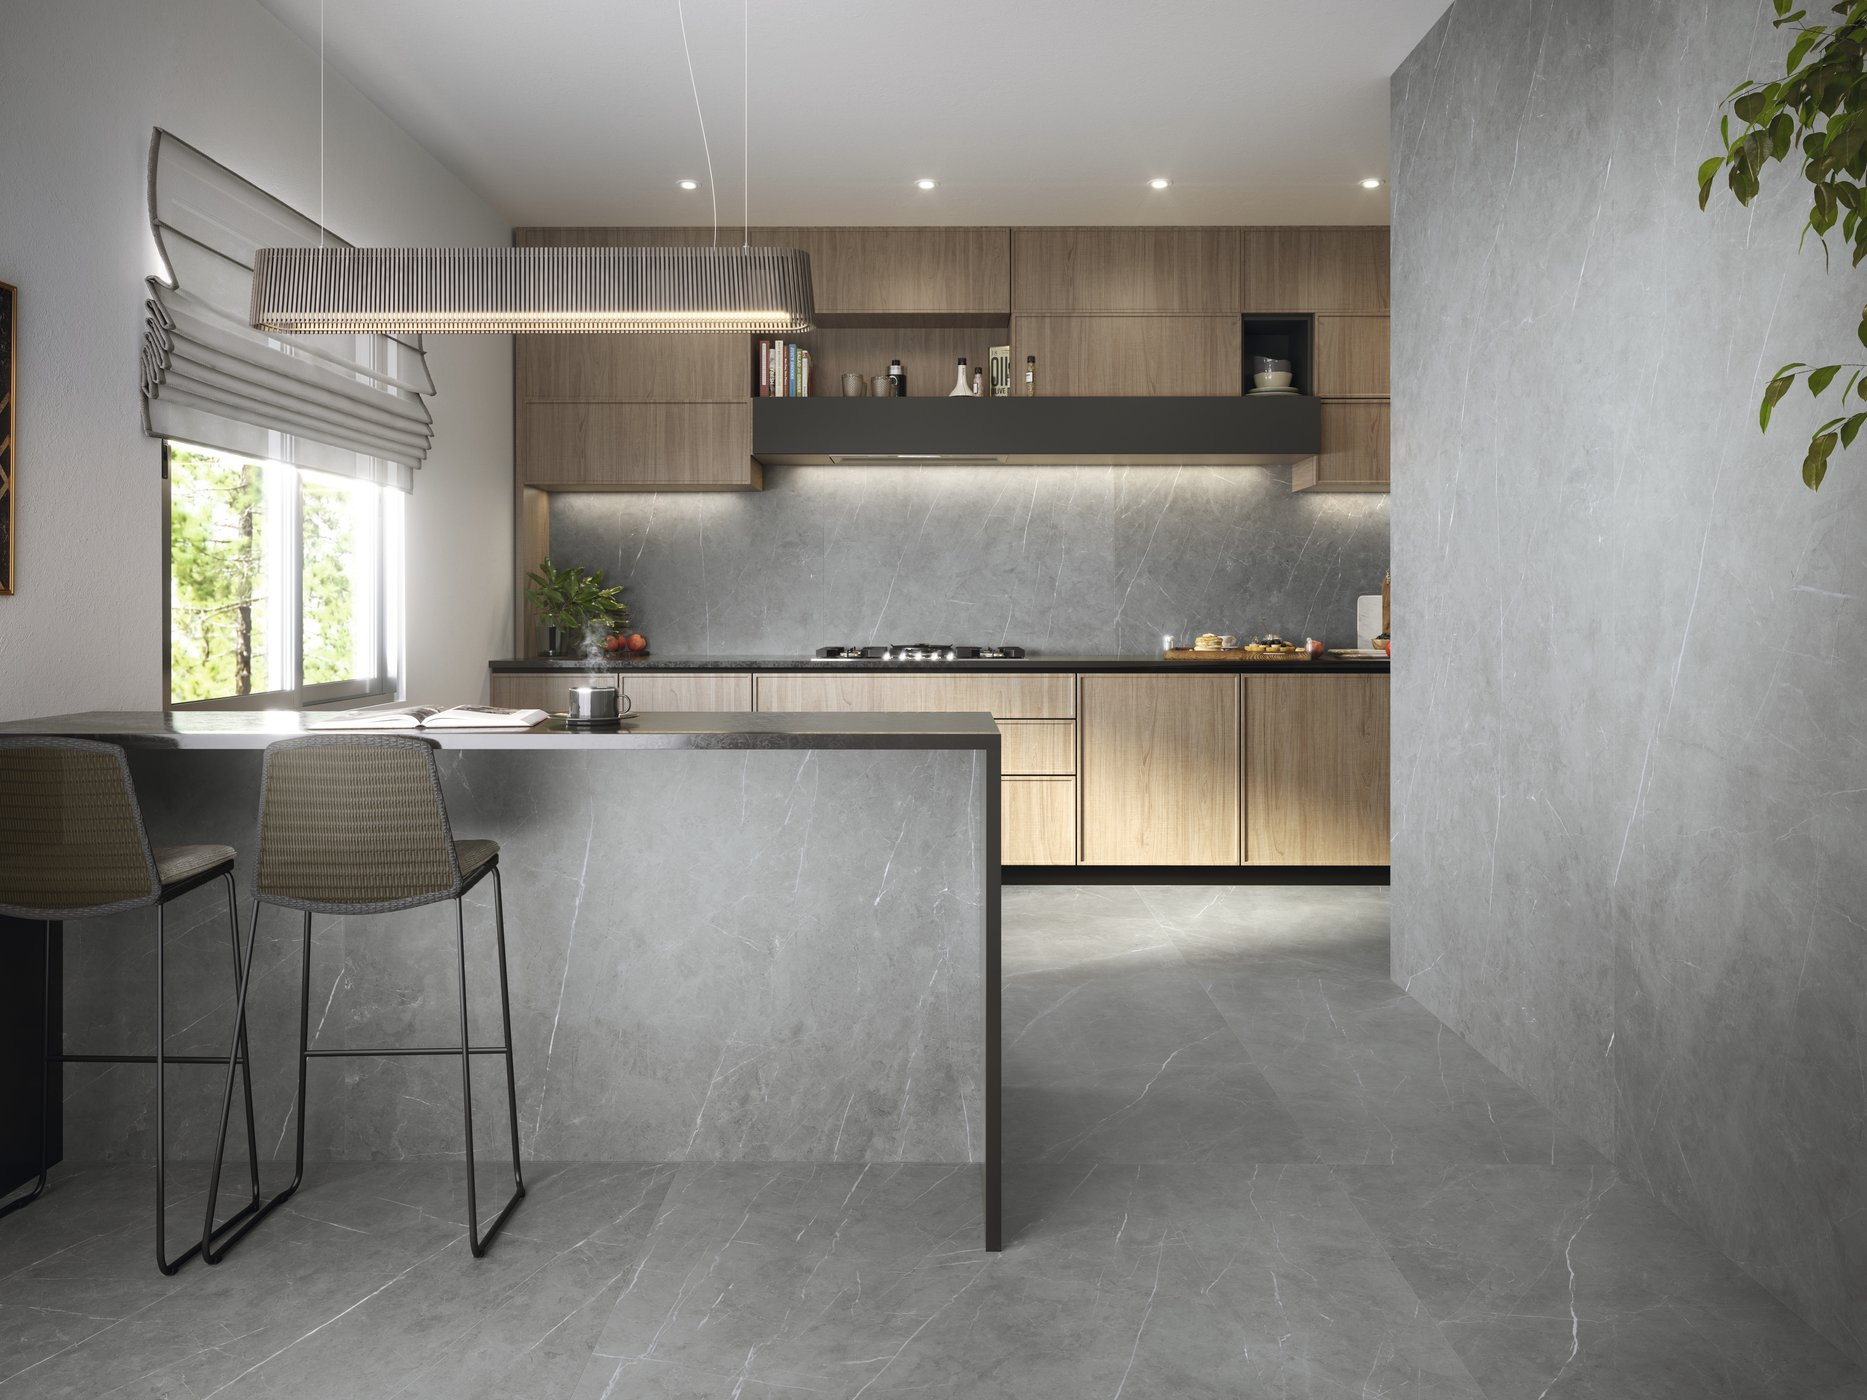 Tessino Grey Natural 260 x 120 cm. Pavimento Tessino Grey Natural 120 x 120 cm.